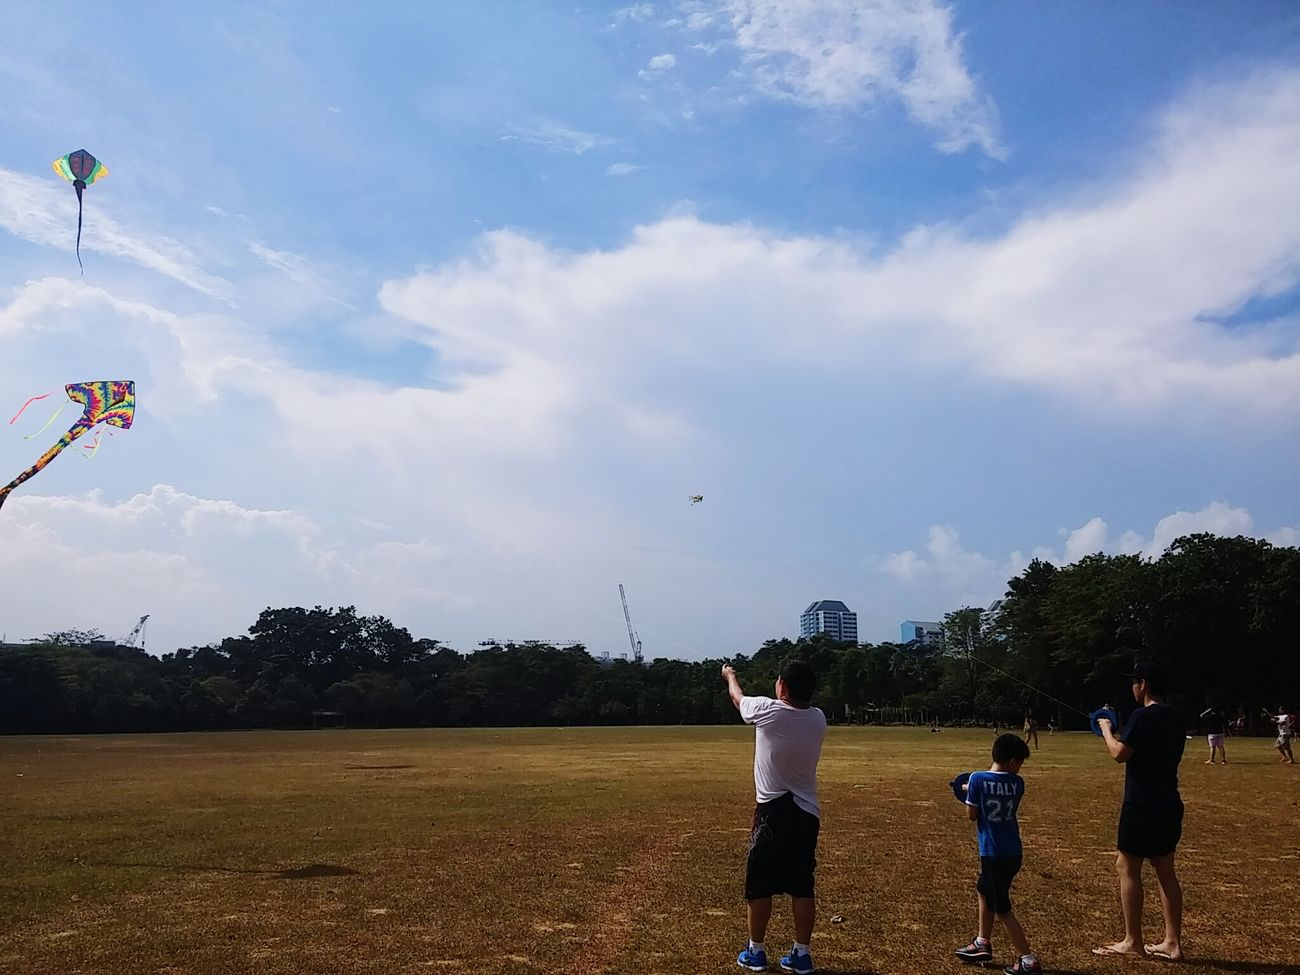 SetFree Kiteflying Bondingtime